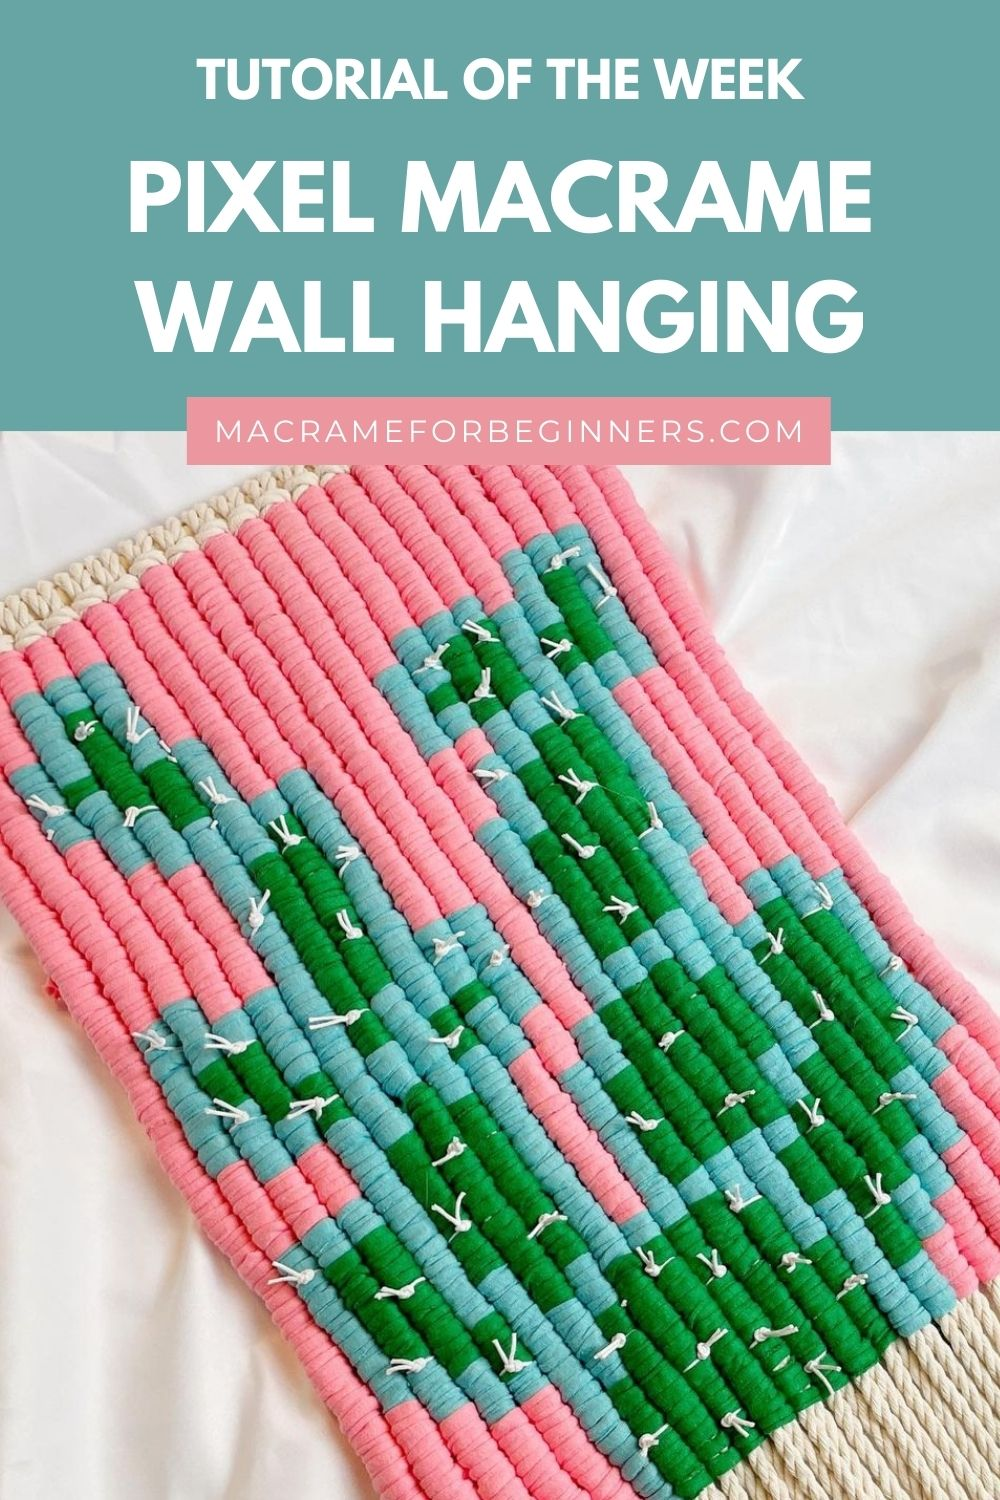 Easy Pixel Macrame Cactus Wall Hanging by Simply Inspired - Macrame for Beginners